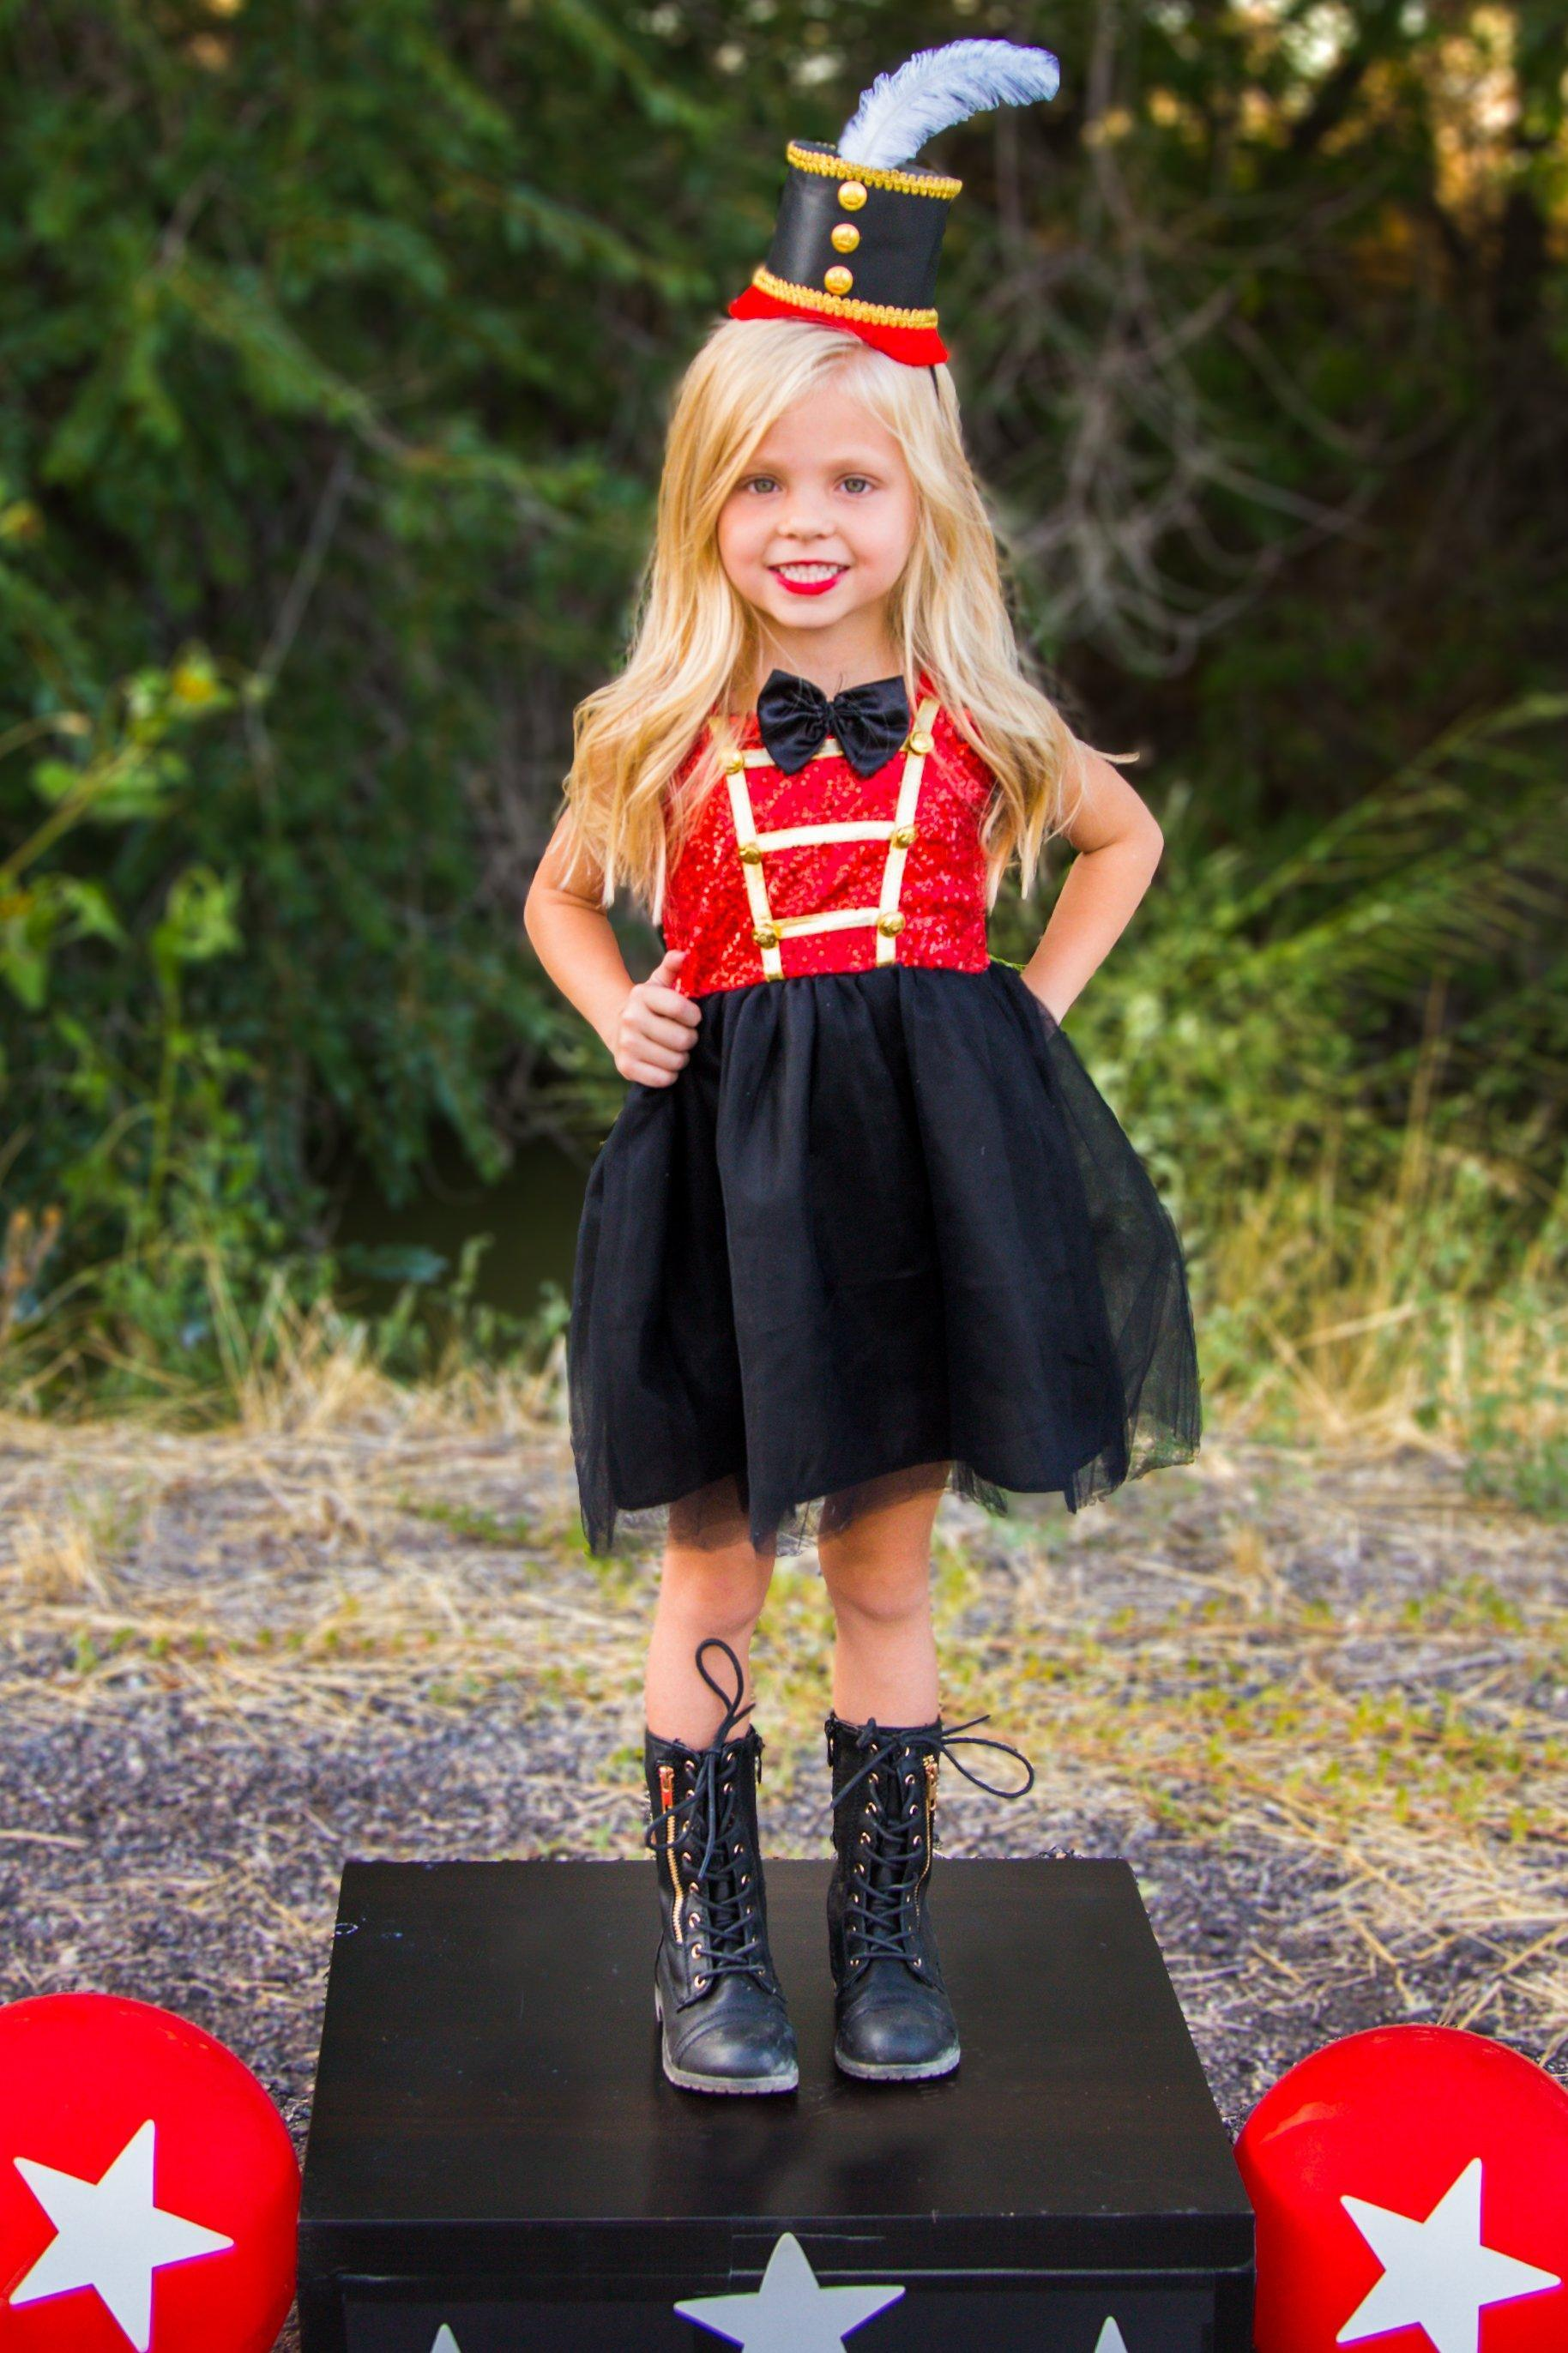 Halloween 2020 Costumes Greatest Show Greatest Show Ringmaster Costume Set   HIDE | Awesome kids